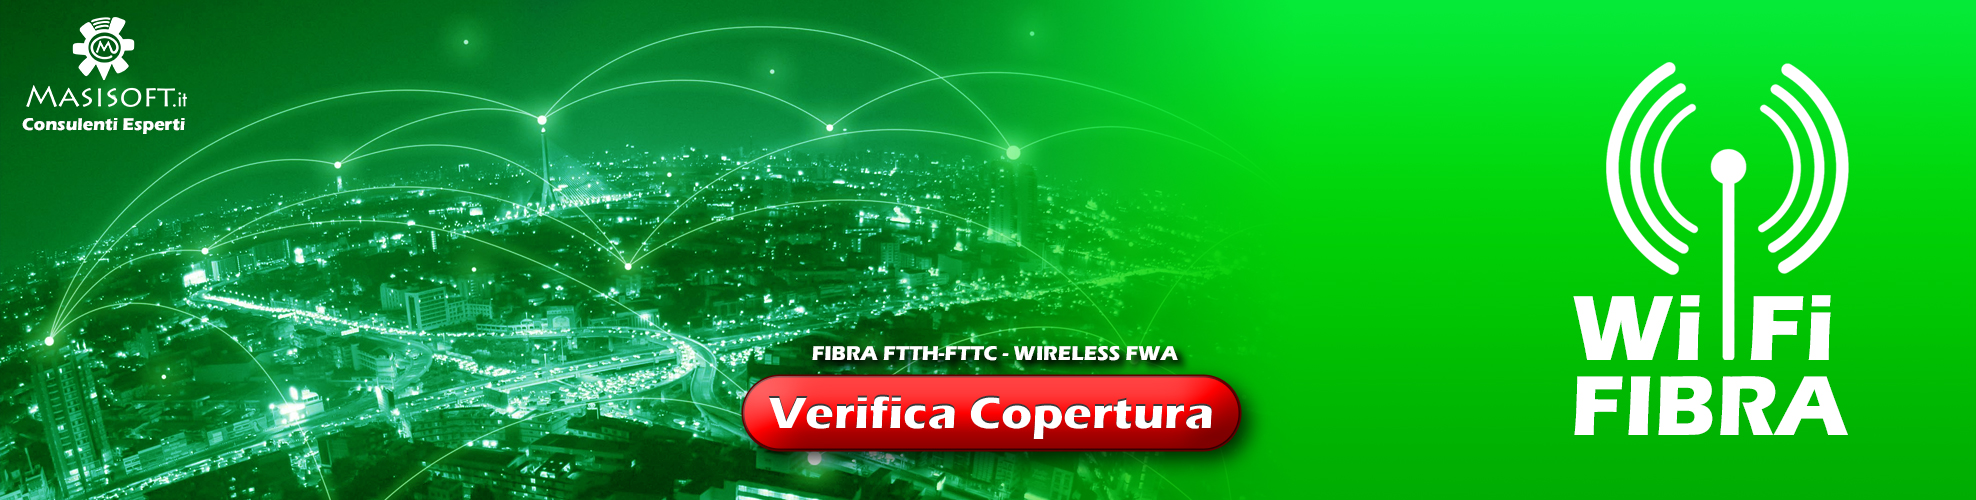 Verifica Copertura - Fibra FTTH - FTTC - Antenna Wireless -